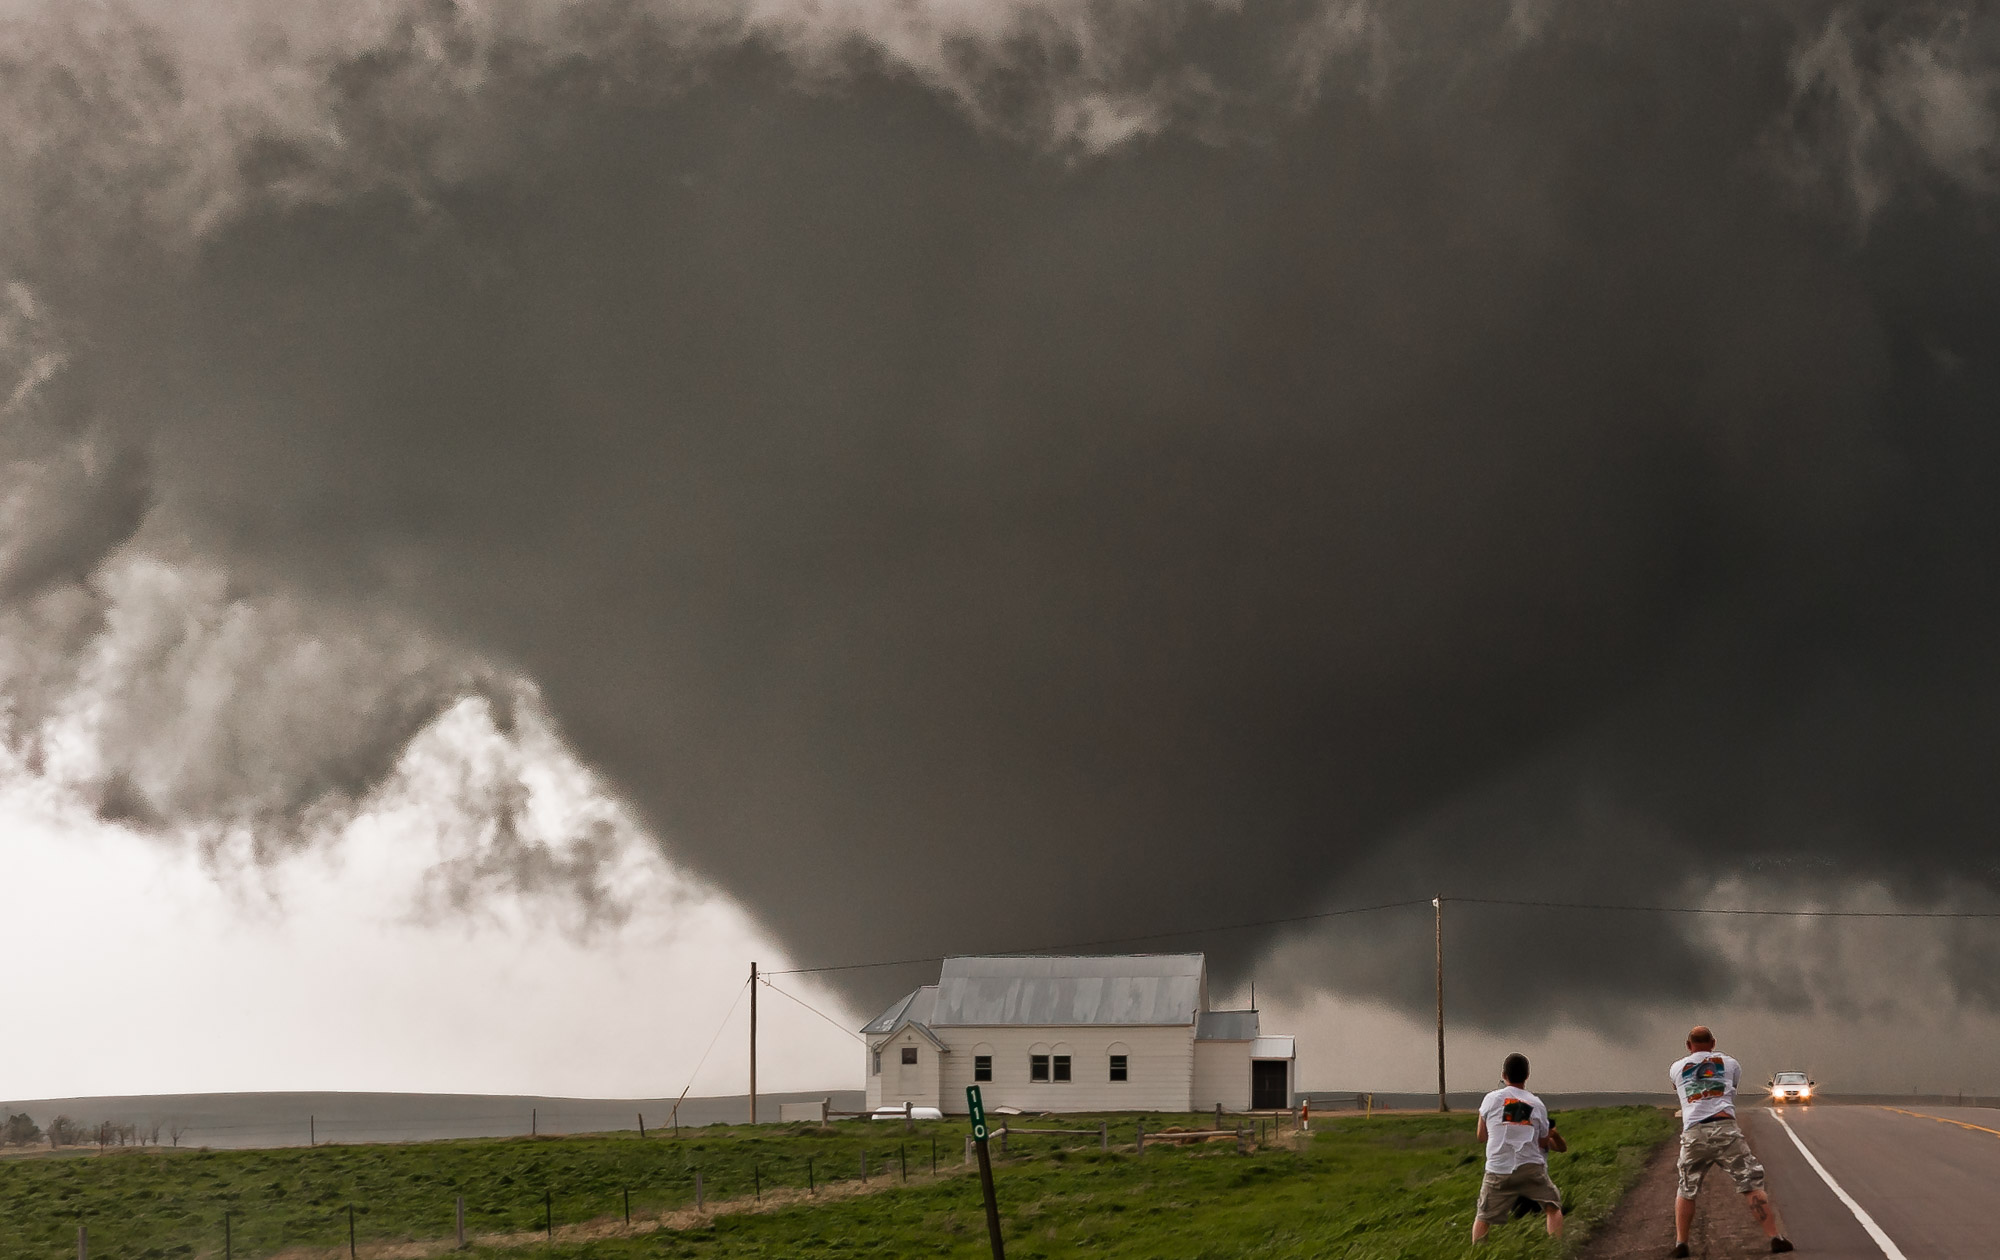 Tornado near Plainview, South Dakota